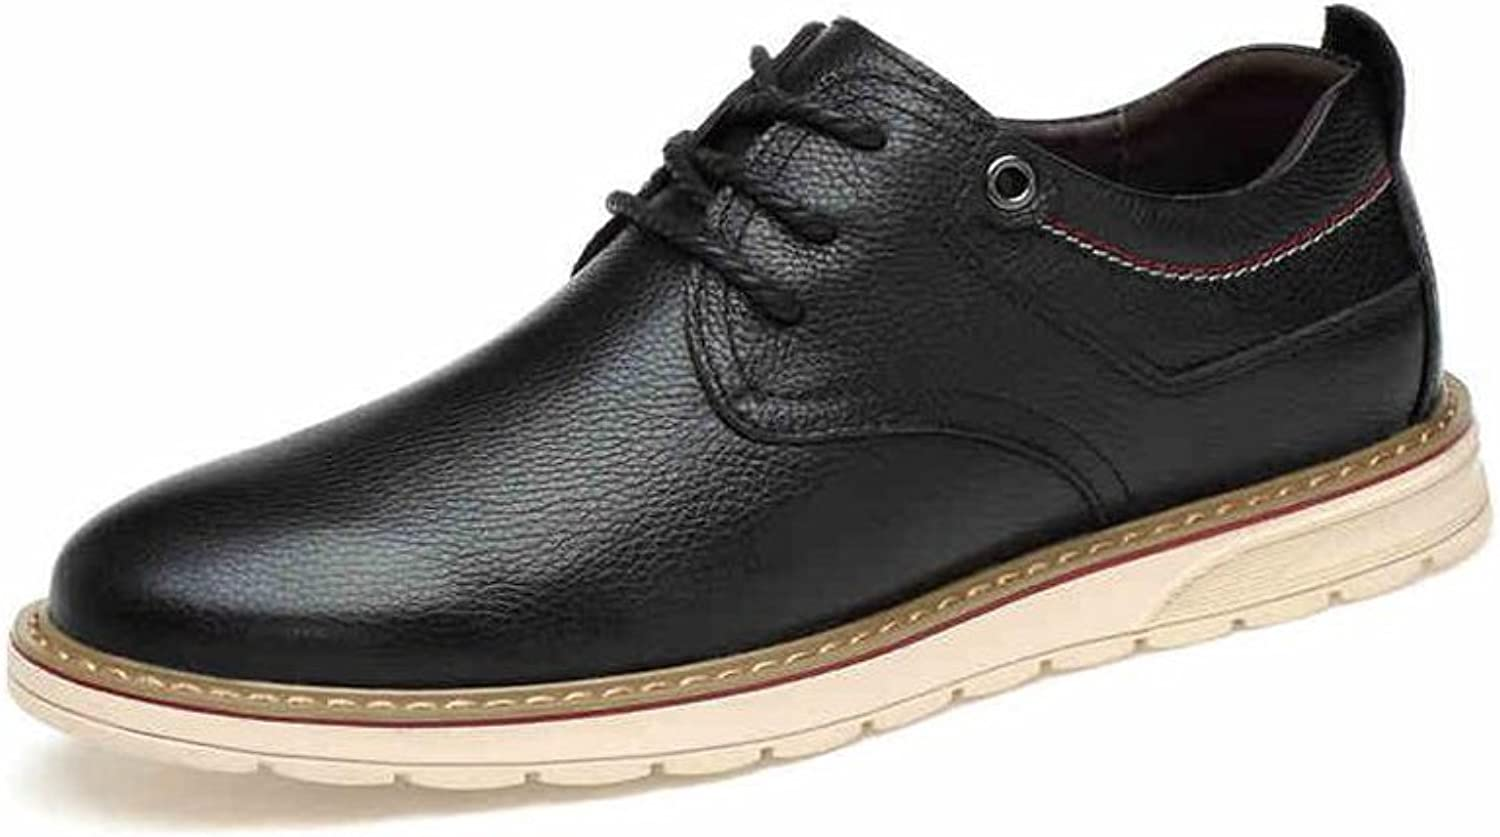 YIXINY British Style Plate shoes Leisure Comfortable Youth Spring And Autumn Black Brown bluee (color   BLACK, Size   EU39 UK6 CN39)